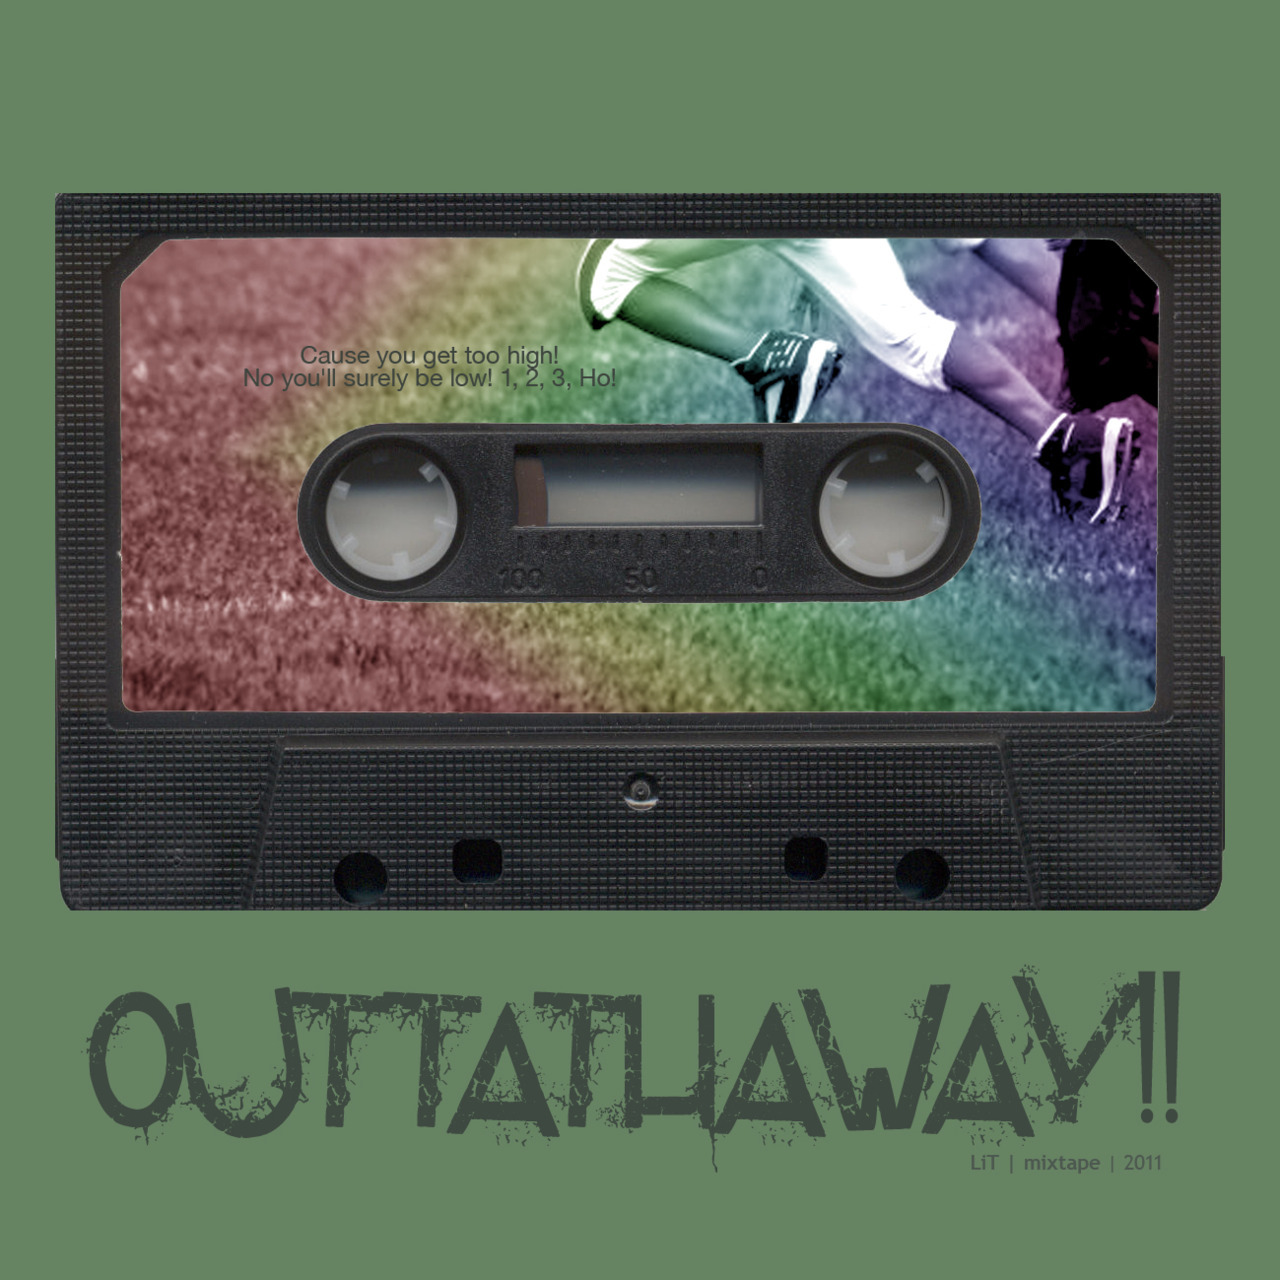 lalitia:  outtathaway : get the hell out of my friggin way[the mixtape that jogs with you]   happy listening, running shoes.stomping feet.body in motion.you. oo.oo | 133 bpm | The Vines - Outtathaway!o2.53 | 151 bpm | Pulseprogramming - First They Fireo6.o5 | 163 bpm | Theme - Hawaii Five-Oo7.53 | 169 bpm | Janelle Monae feat. Big Boi - Tightrope12.22 | 147 bpm | The Knack - My Sharona17.11 | 158 bpm | The Surfaris - Wipe Out19.45 | 161 bpm | Rolling Stones - Paint it Black23.22 | 171 bpm | Radiohead - Bodysnatchers27.2o | 133 bpm | Surfer Blood - Take it Easy [RAC Maury Mix]31.o9 | 167 bpm | The Raconteurs - Salute Your Solution34.o2 | 174 bpm | Vampire Weekend - A-Punk36.17 | 138 bpm | Devendra Banhart - Can't Help but Smiling picture inside the tape courtesy of Erniko Yamadadownload outtathaway! | 38:40